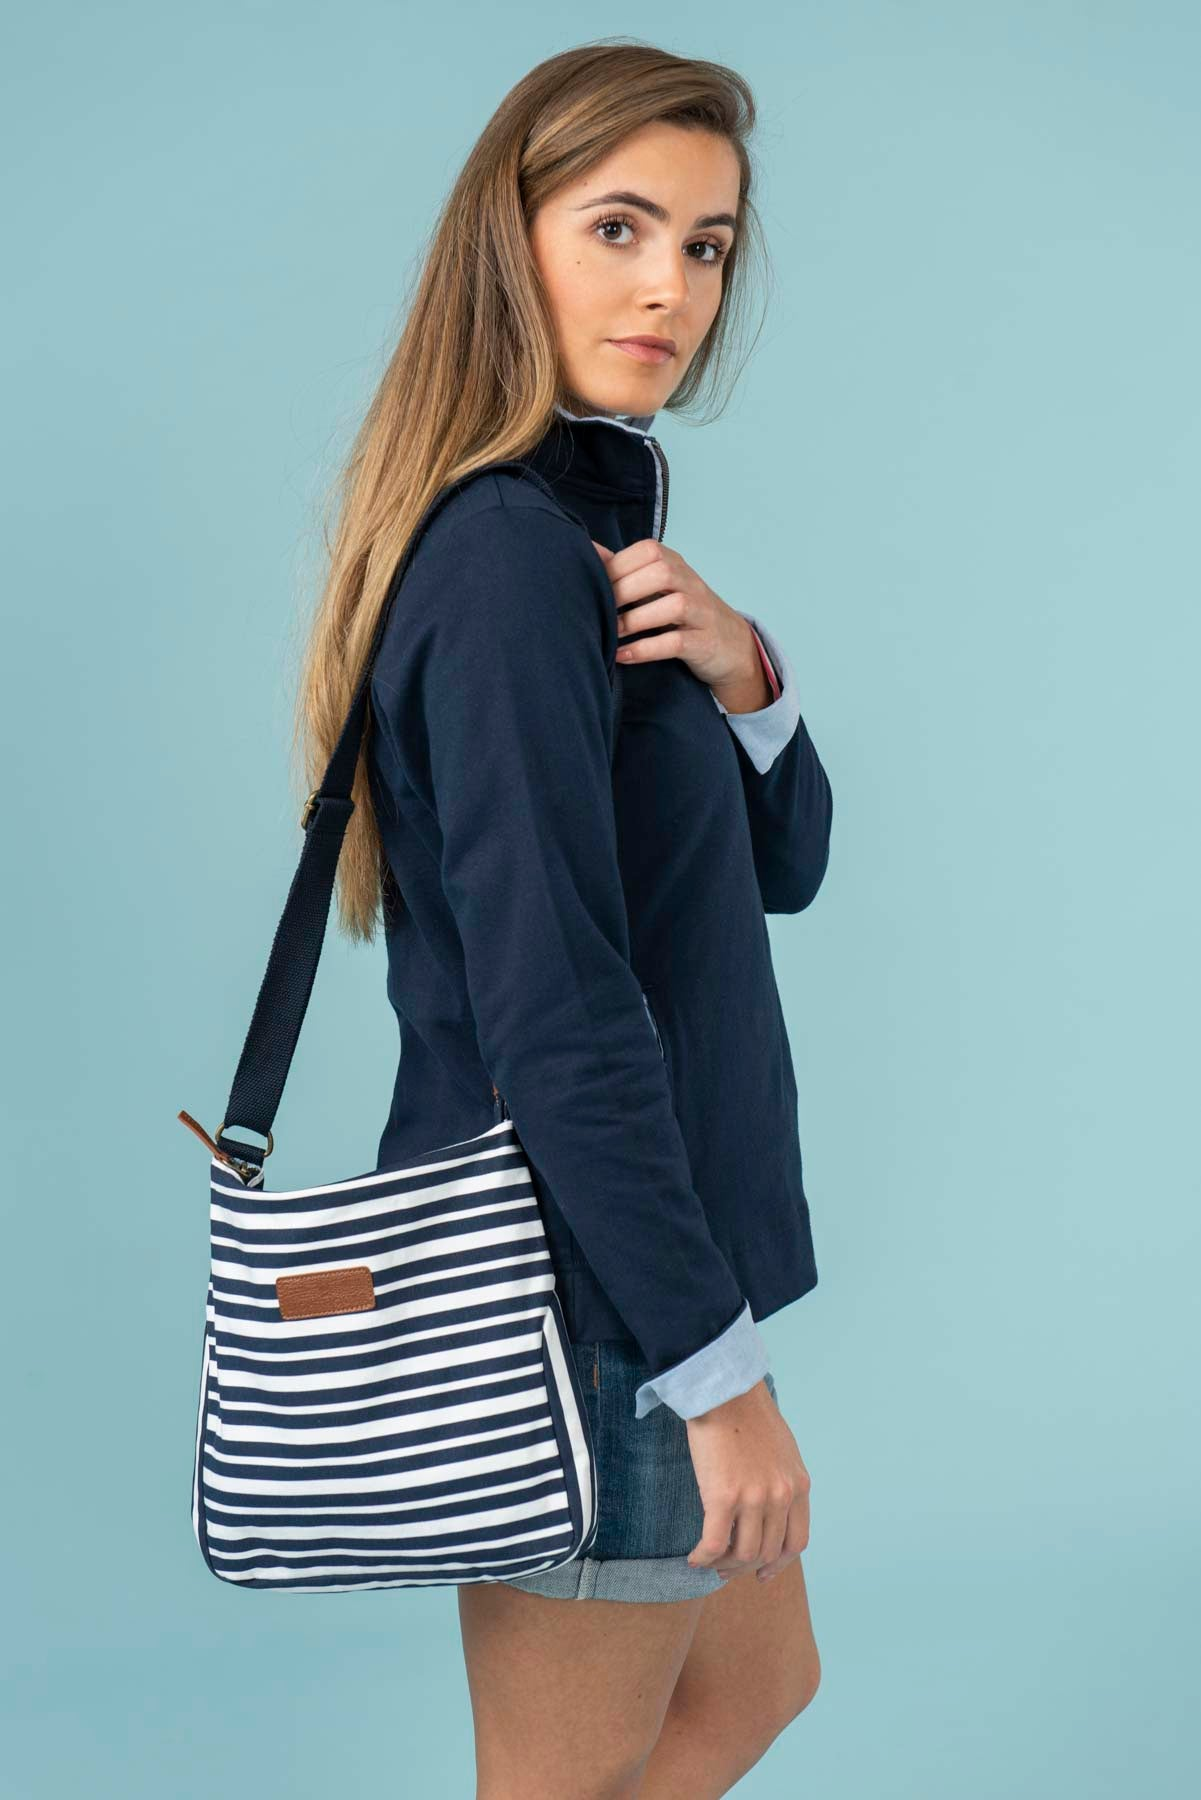 Women's Accessories - Navy striped cross over bag